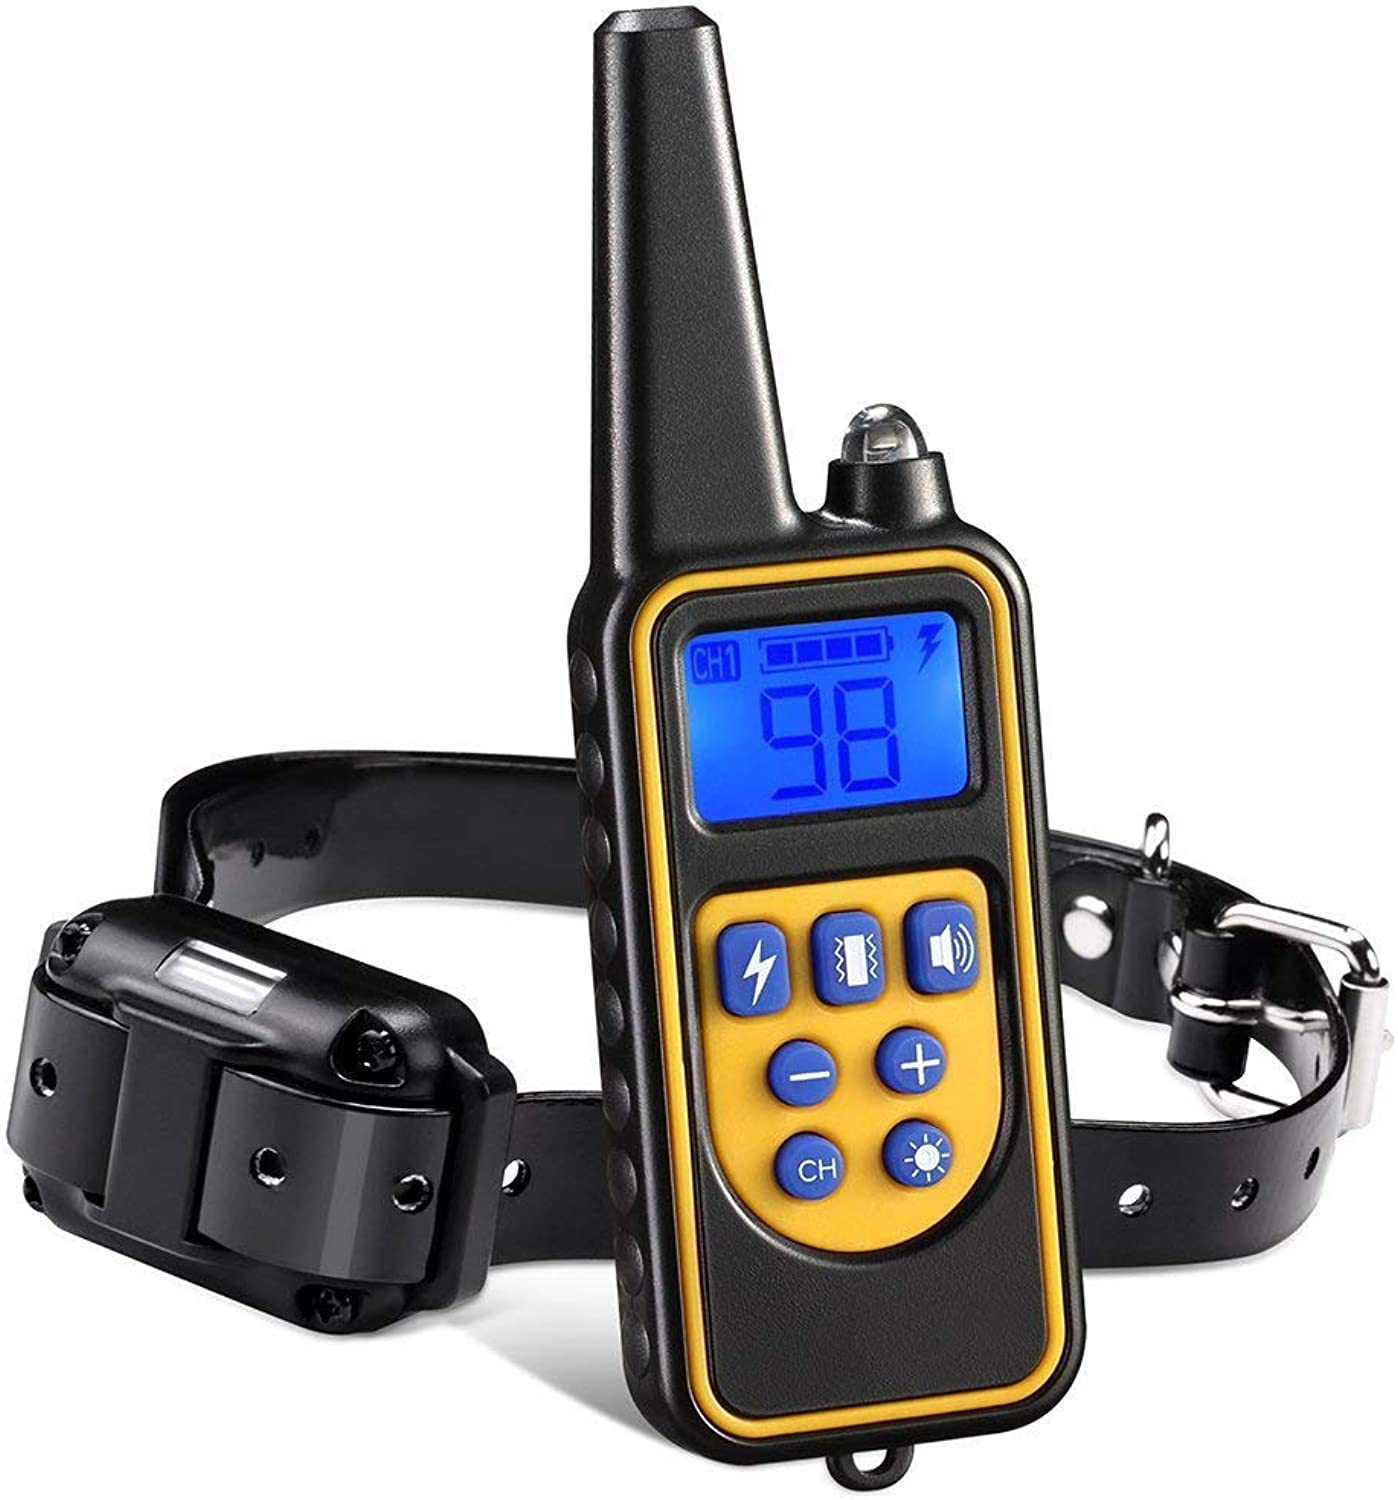 Dog Training Collar, Range 2600 ft 100% Waterproof Rechargeable Remote Control Dog Electric Training Adjustable Collar Dogs